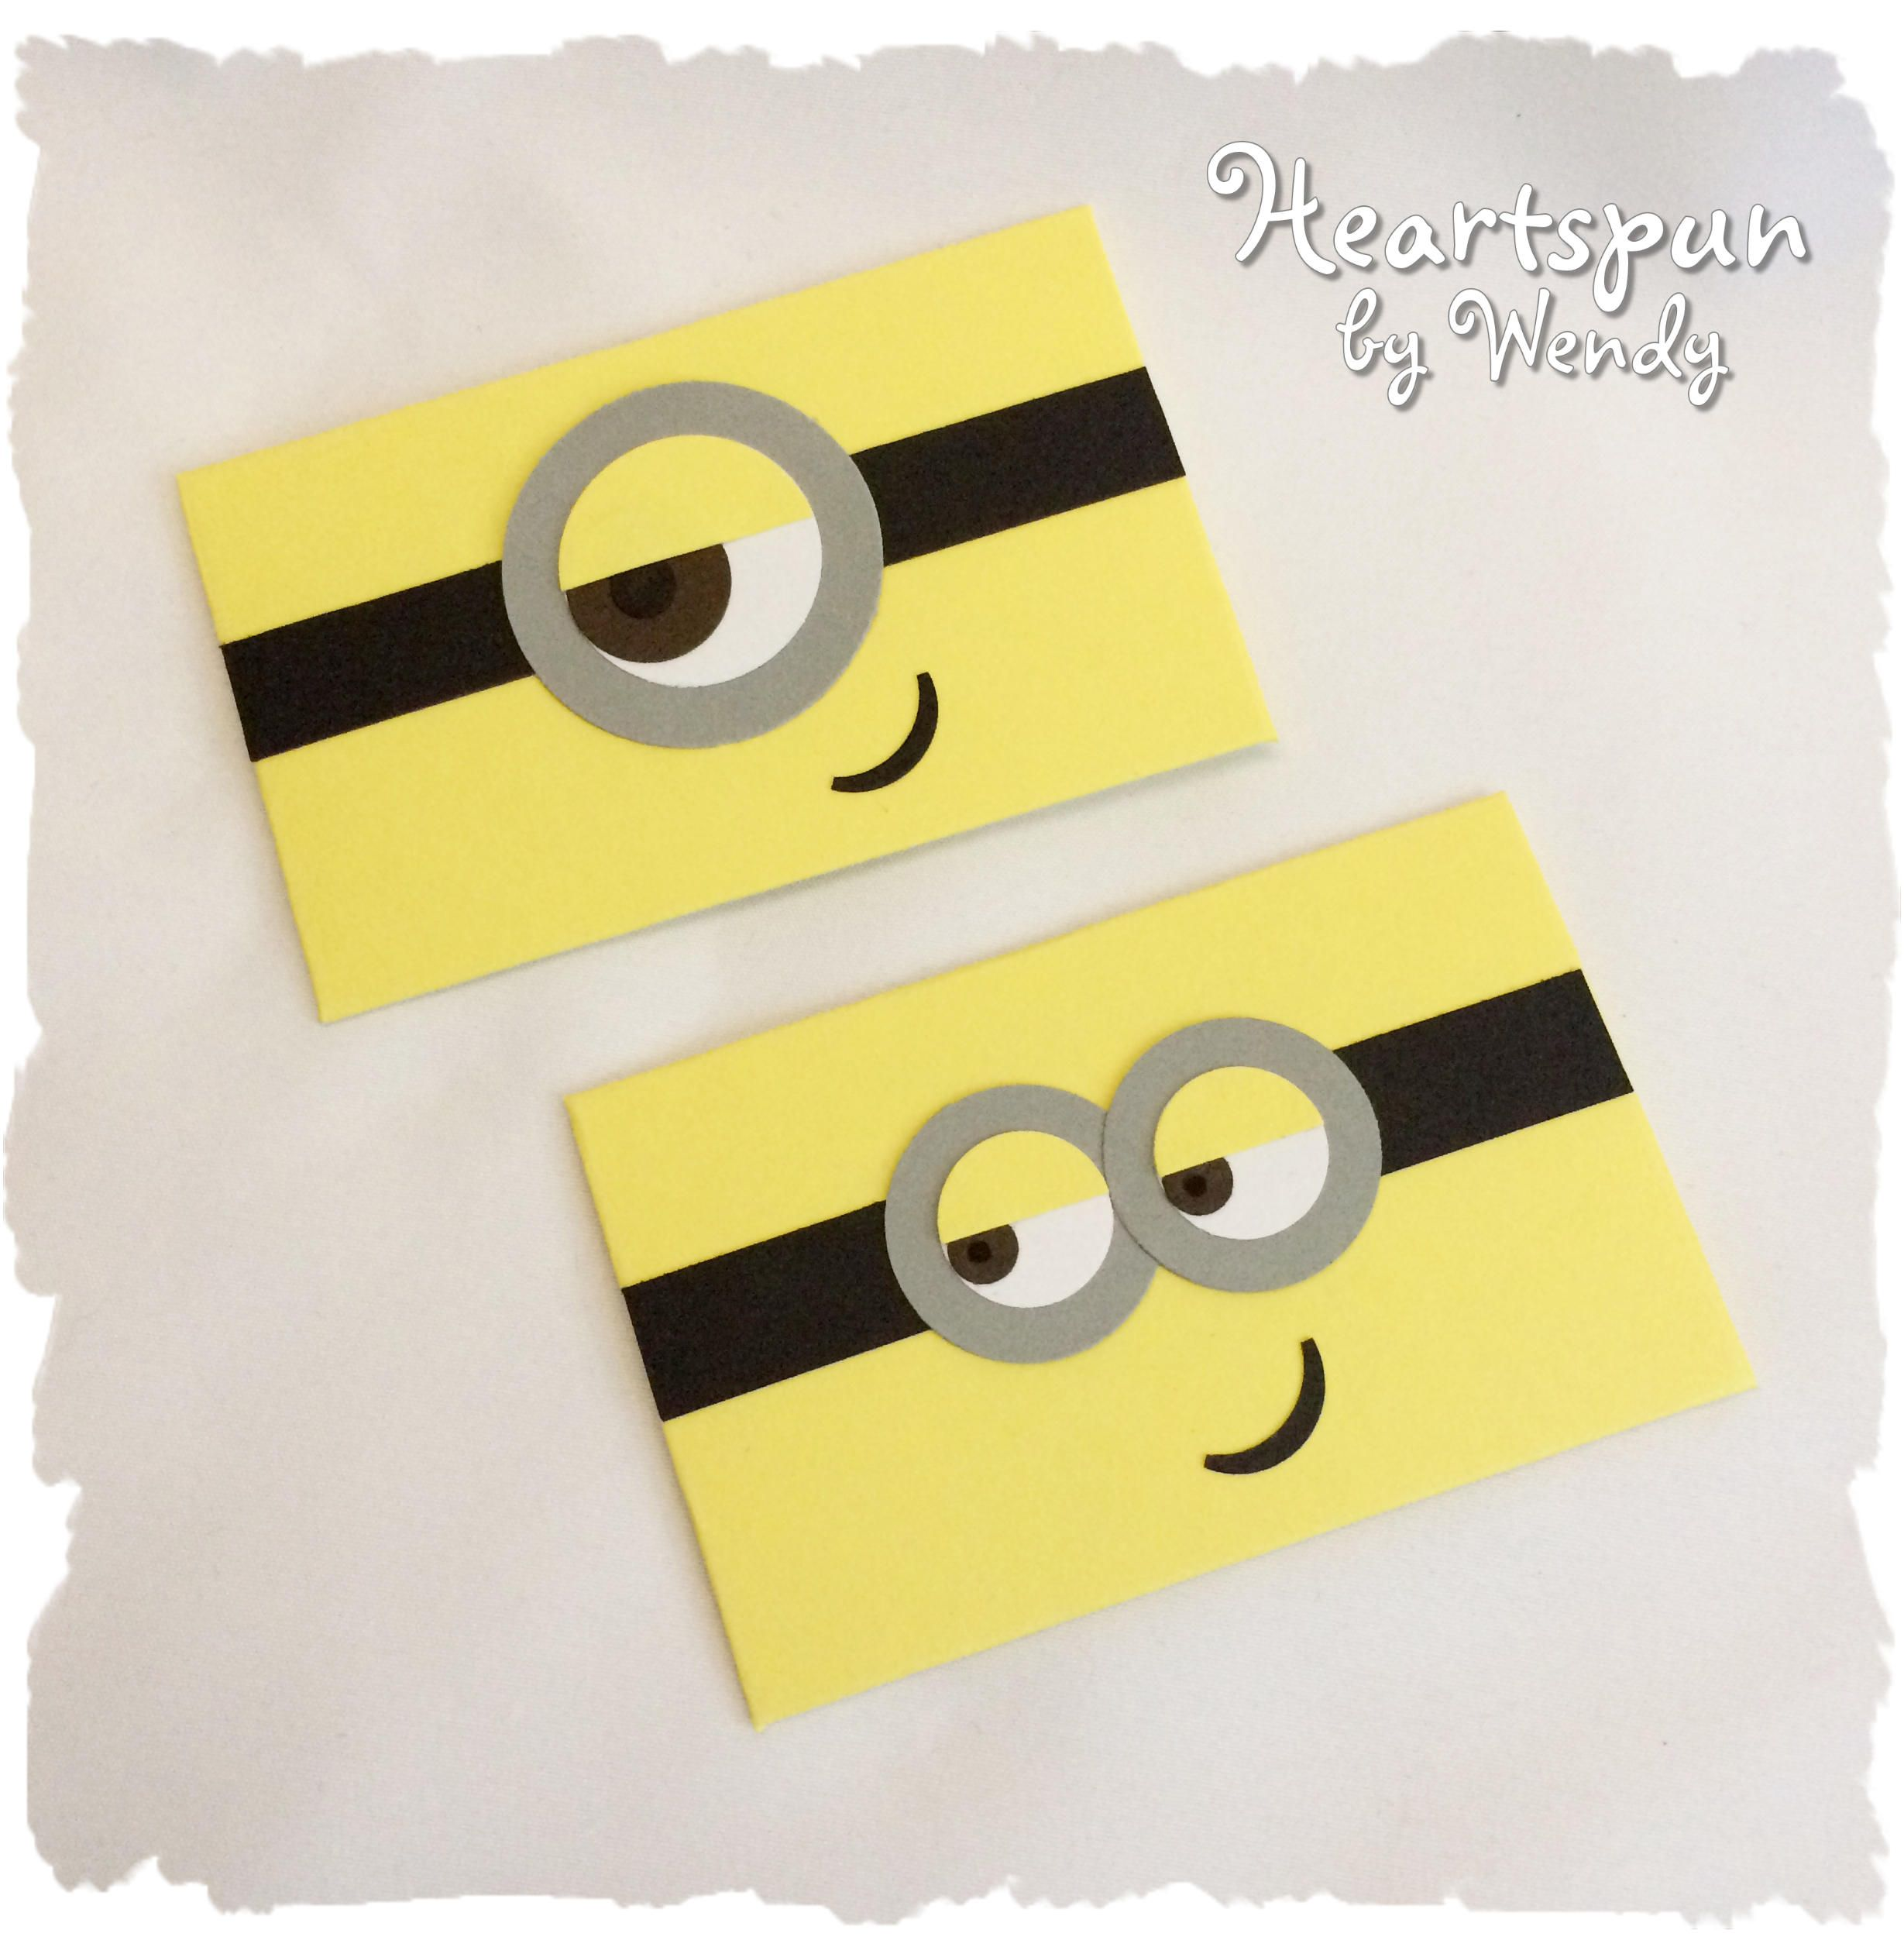 Set Of 2 Minion Gift Card Holders With Note Card Birthday Etsy In 2021 Gift Card Holder Christmas Gift Card Minion Gifts